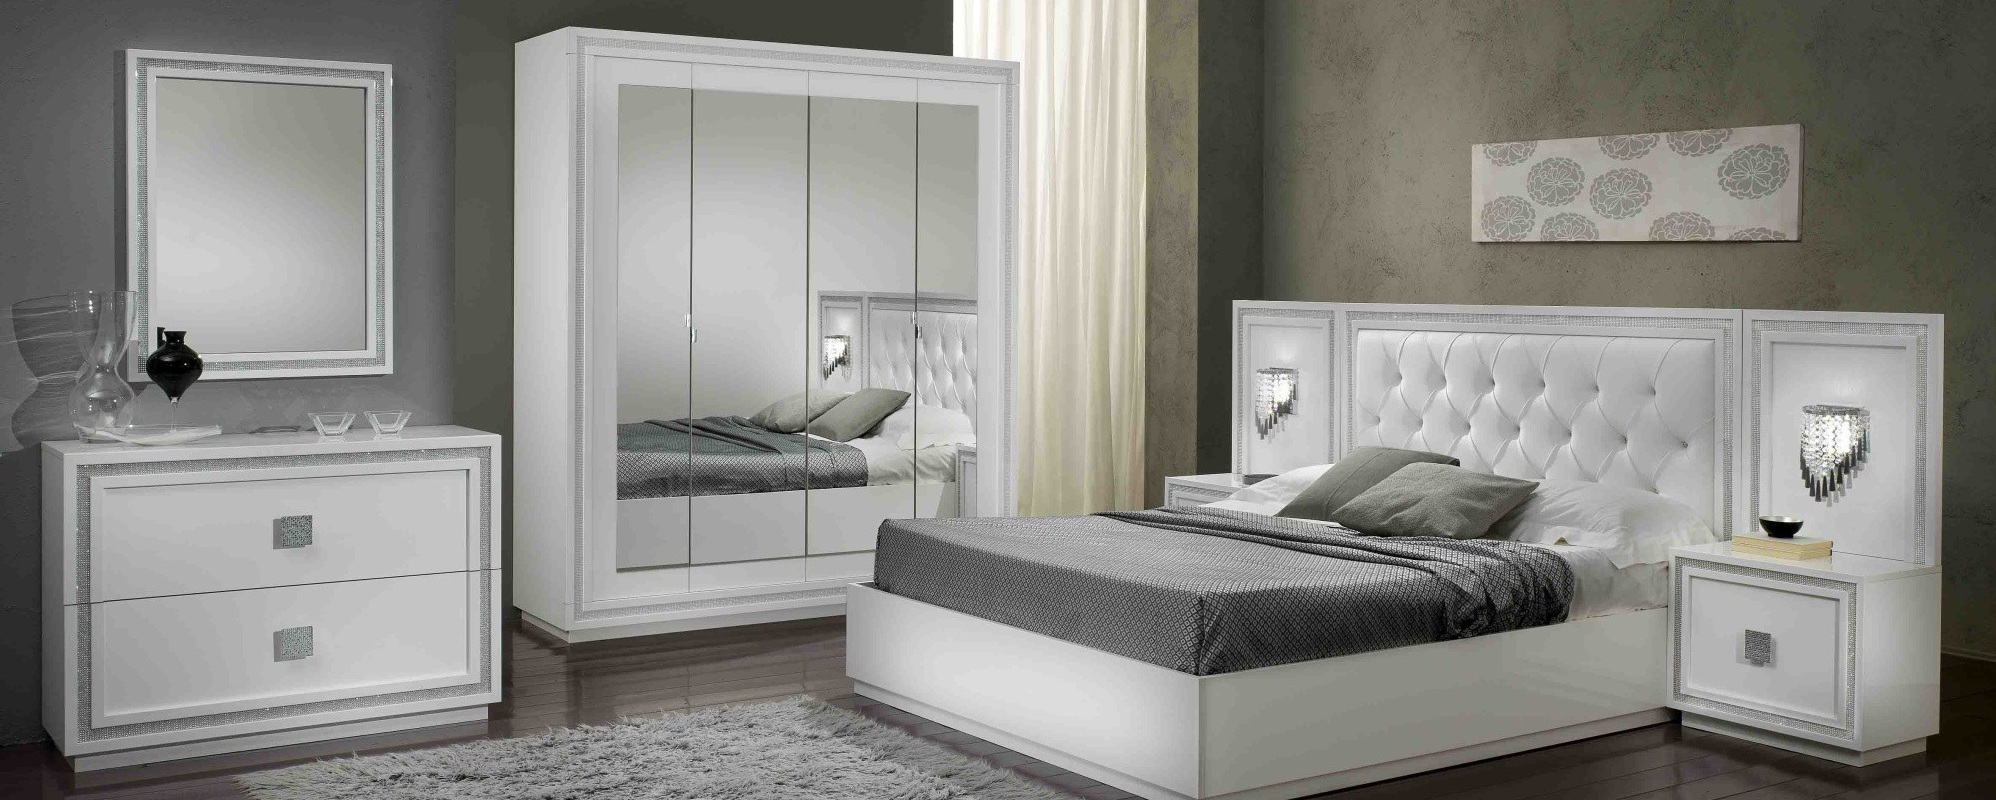 chambre ado fille conforama. Black Bedroom Furniture Sets. Home Design Ideas